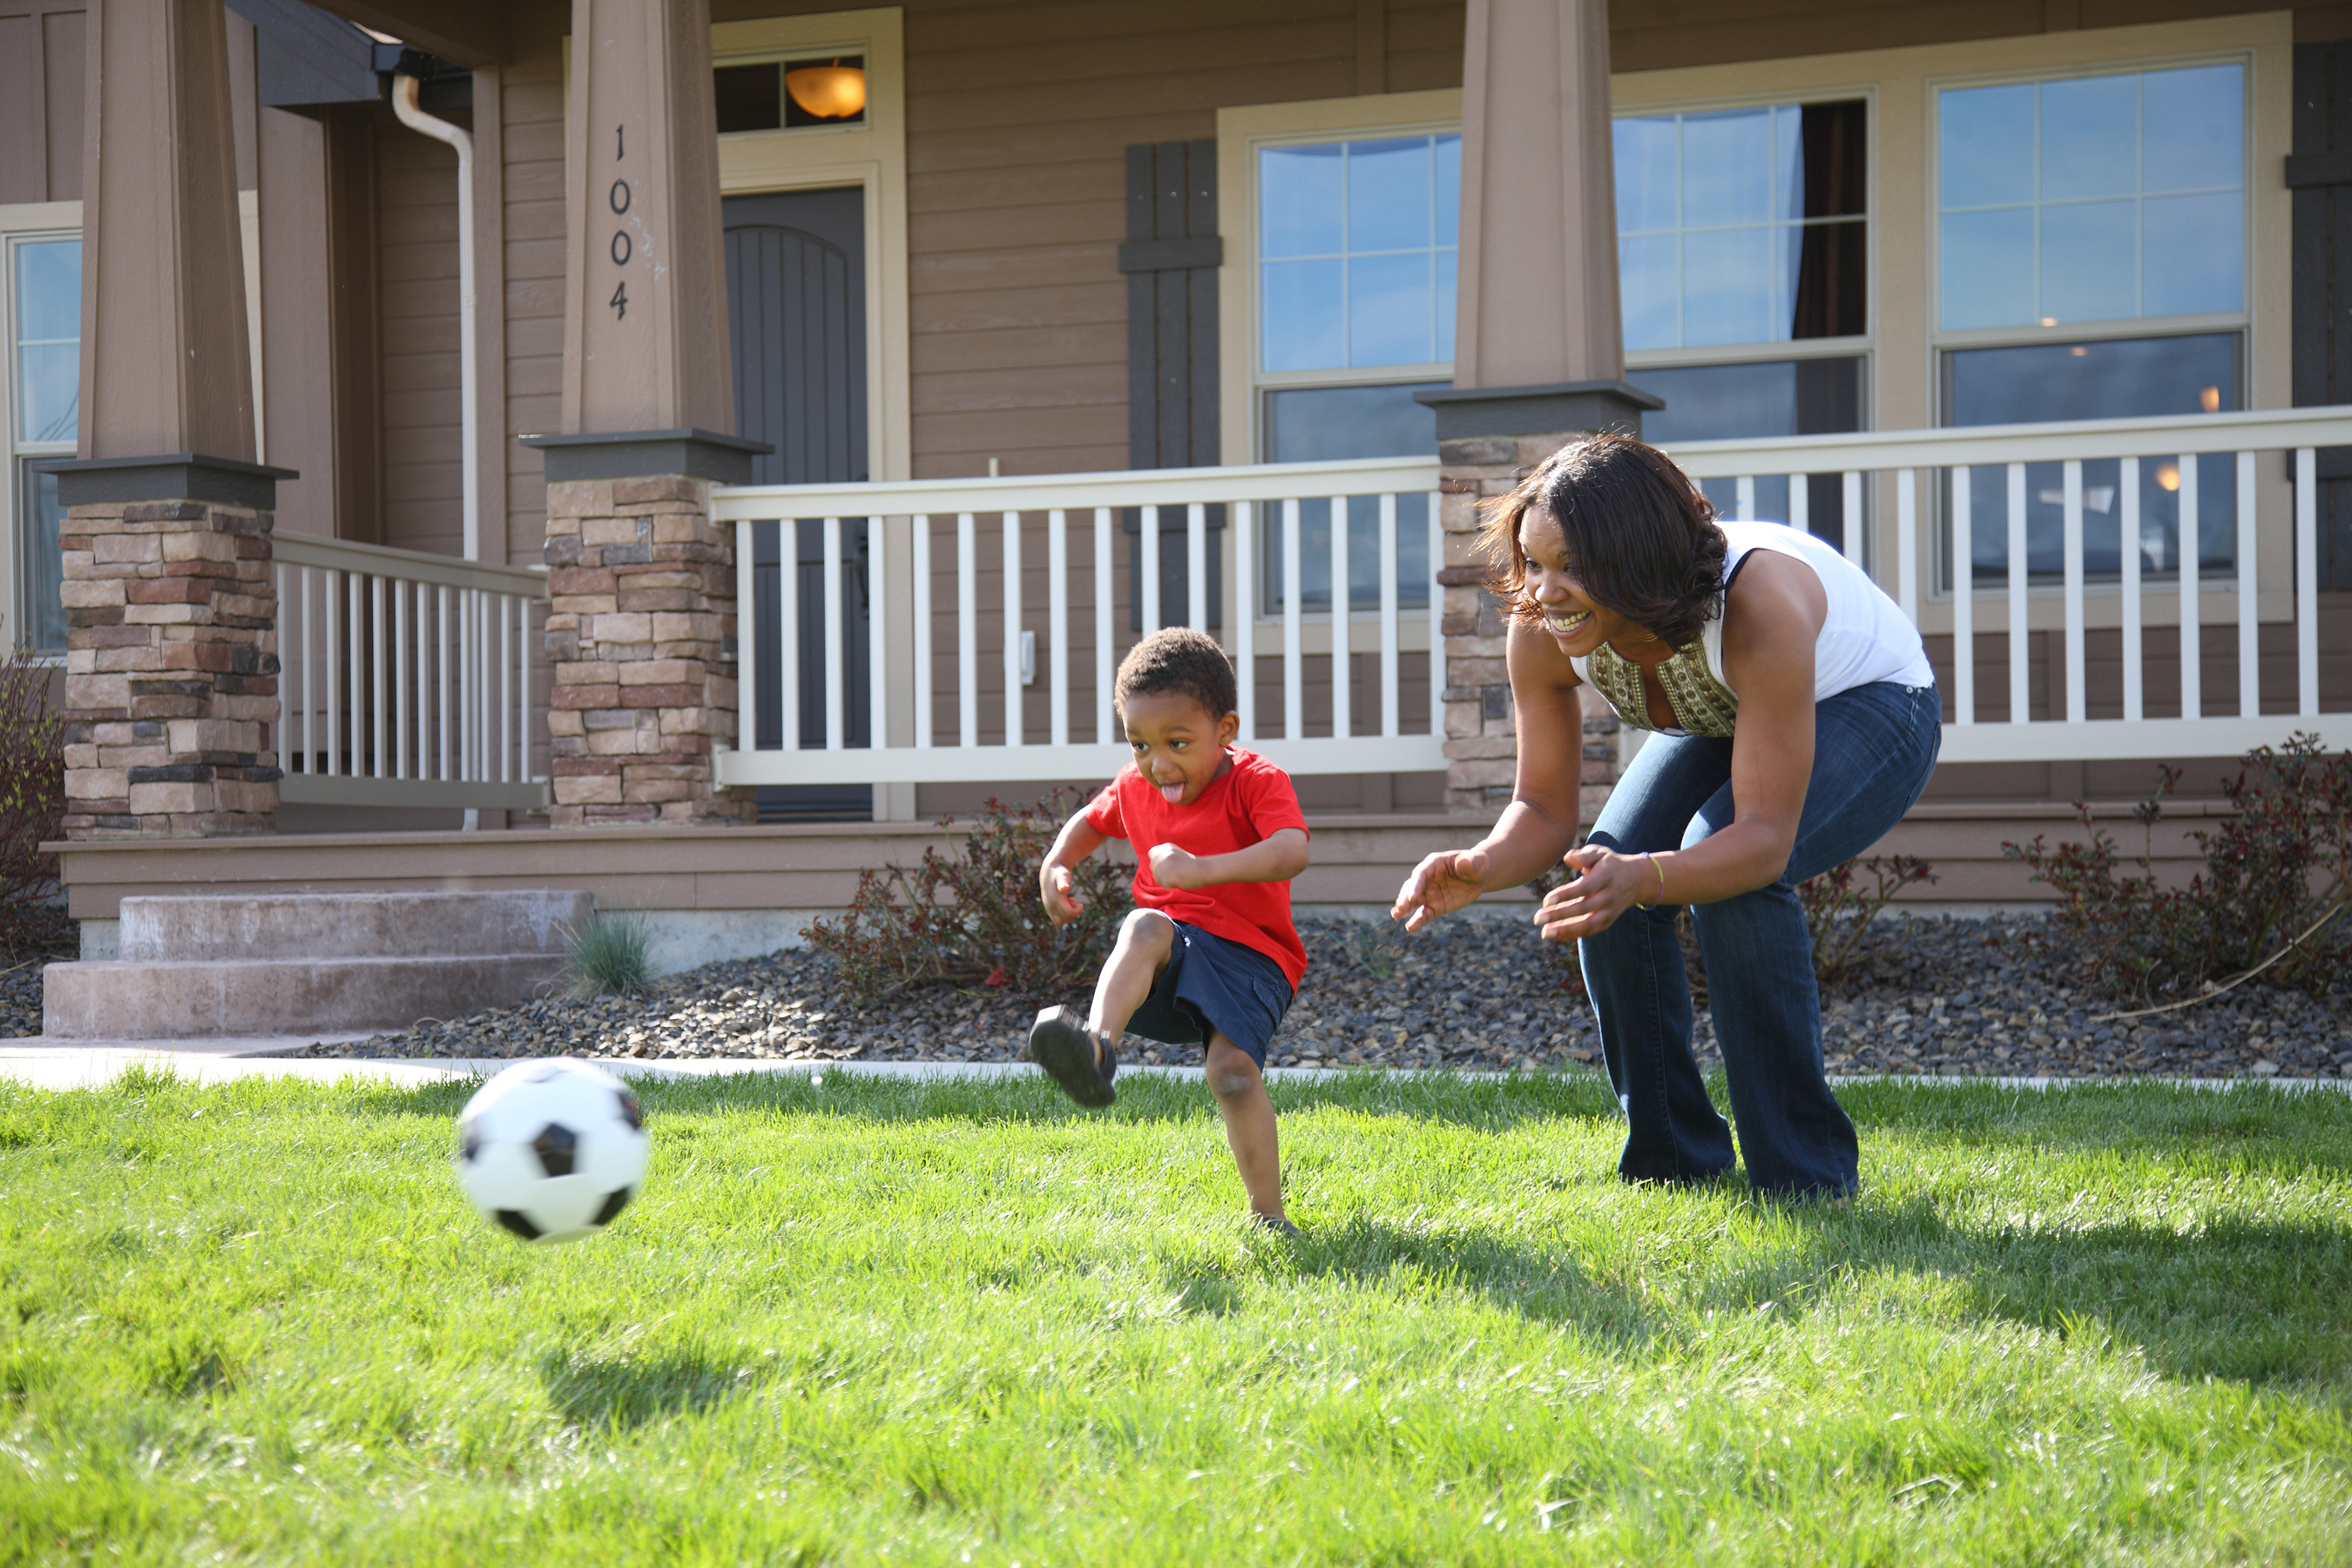 A mother and a son playing soccer in their front yard.